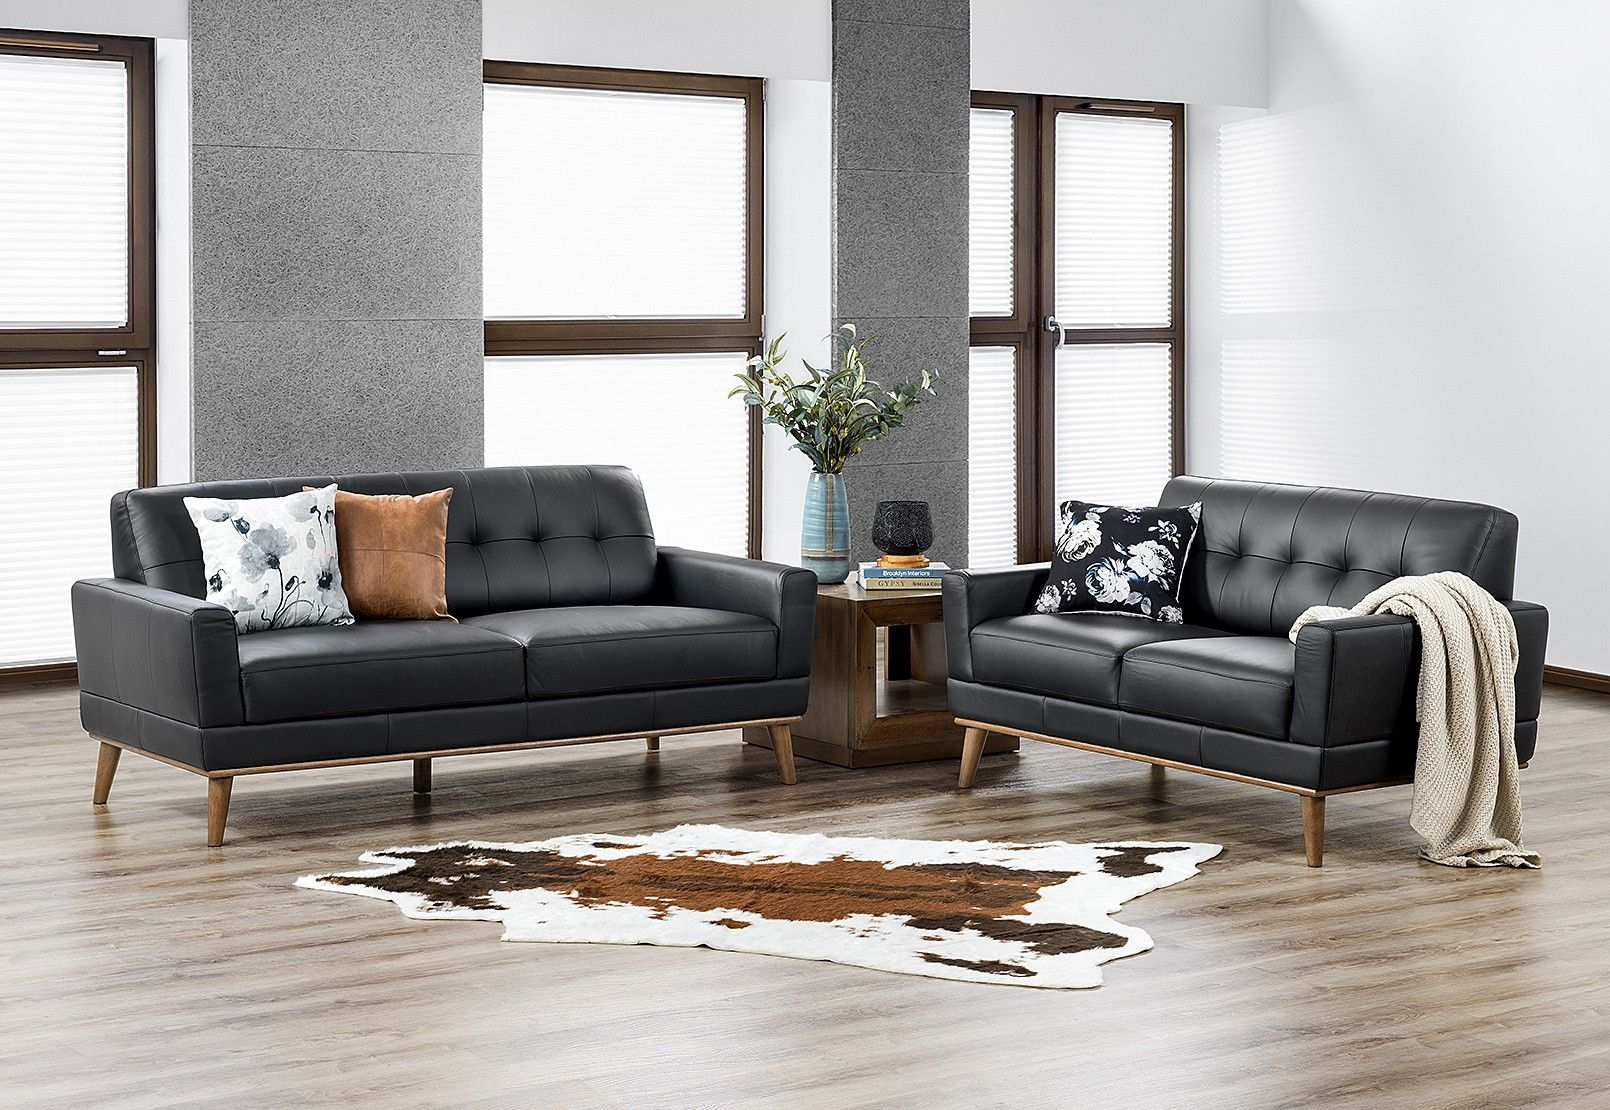 Amazing Marcello Leather Sofa Pair Amart Furniture For Our Home Ibusinesslaw Wood Chair Design Ideas Ibusinesslaworg